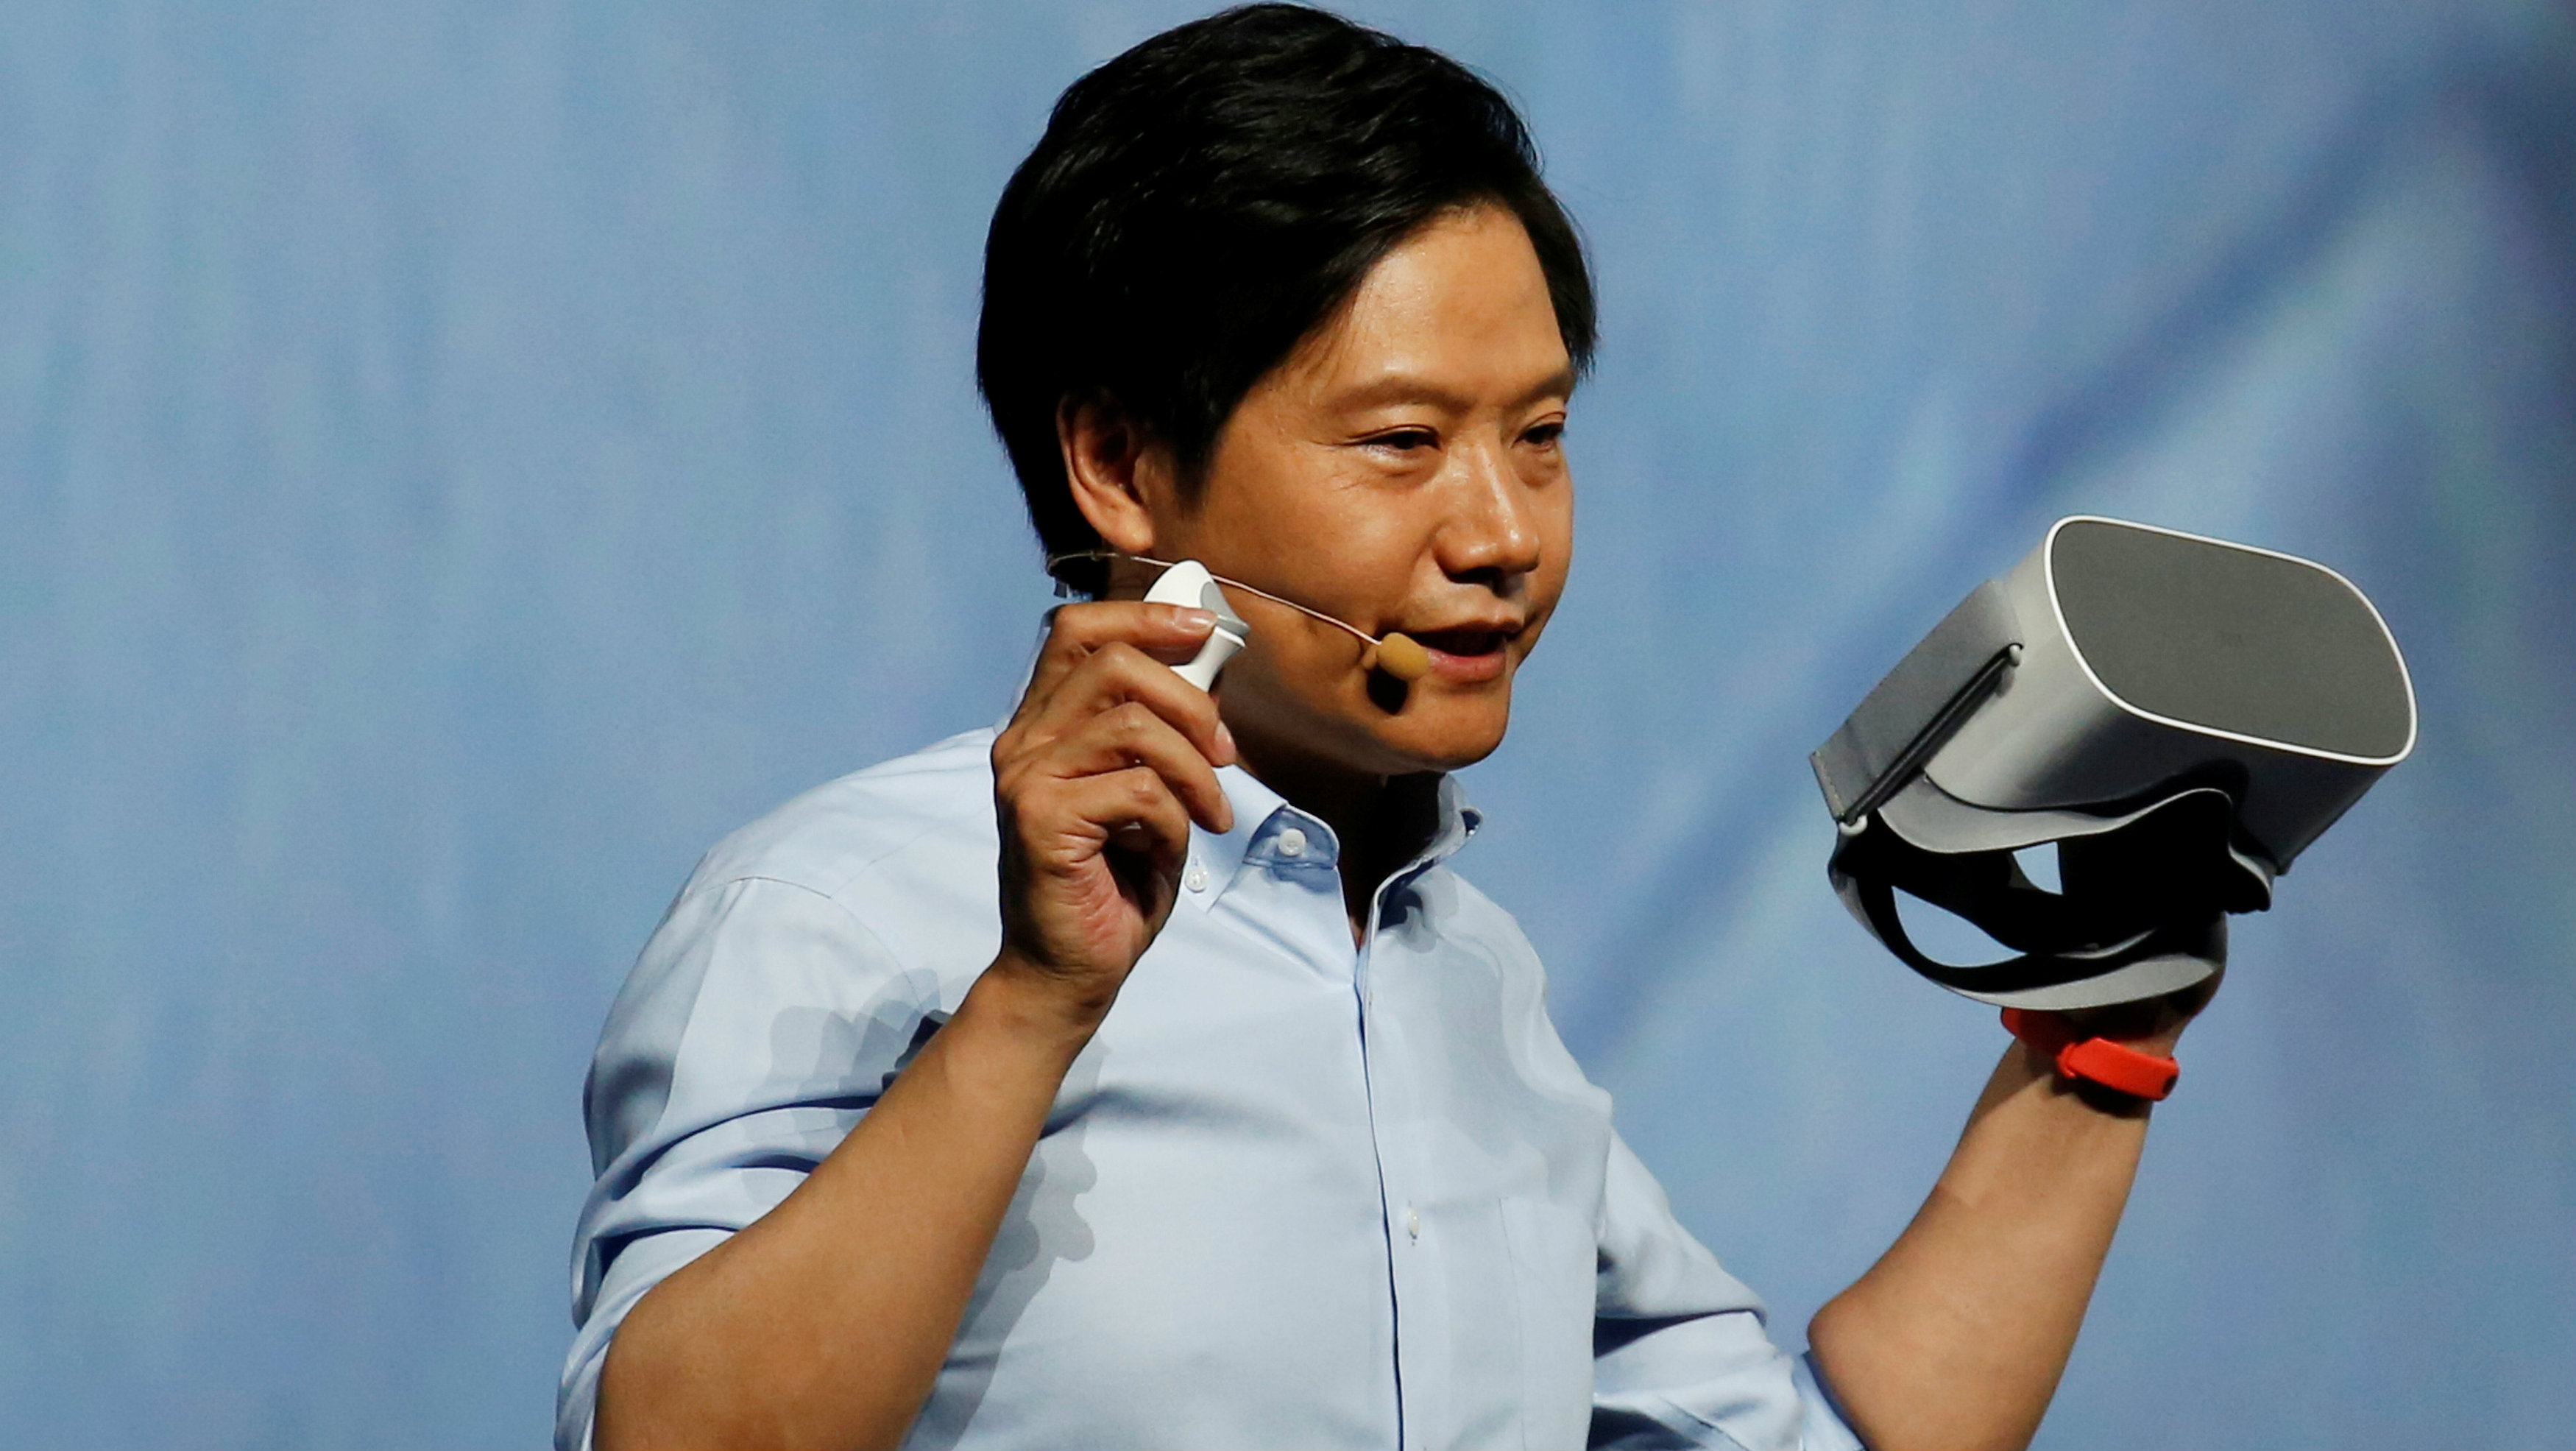 Xiaomi founder Lei Jun holds a new VR headset during a product launch in Shenzhen, China